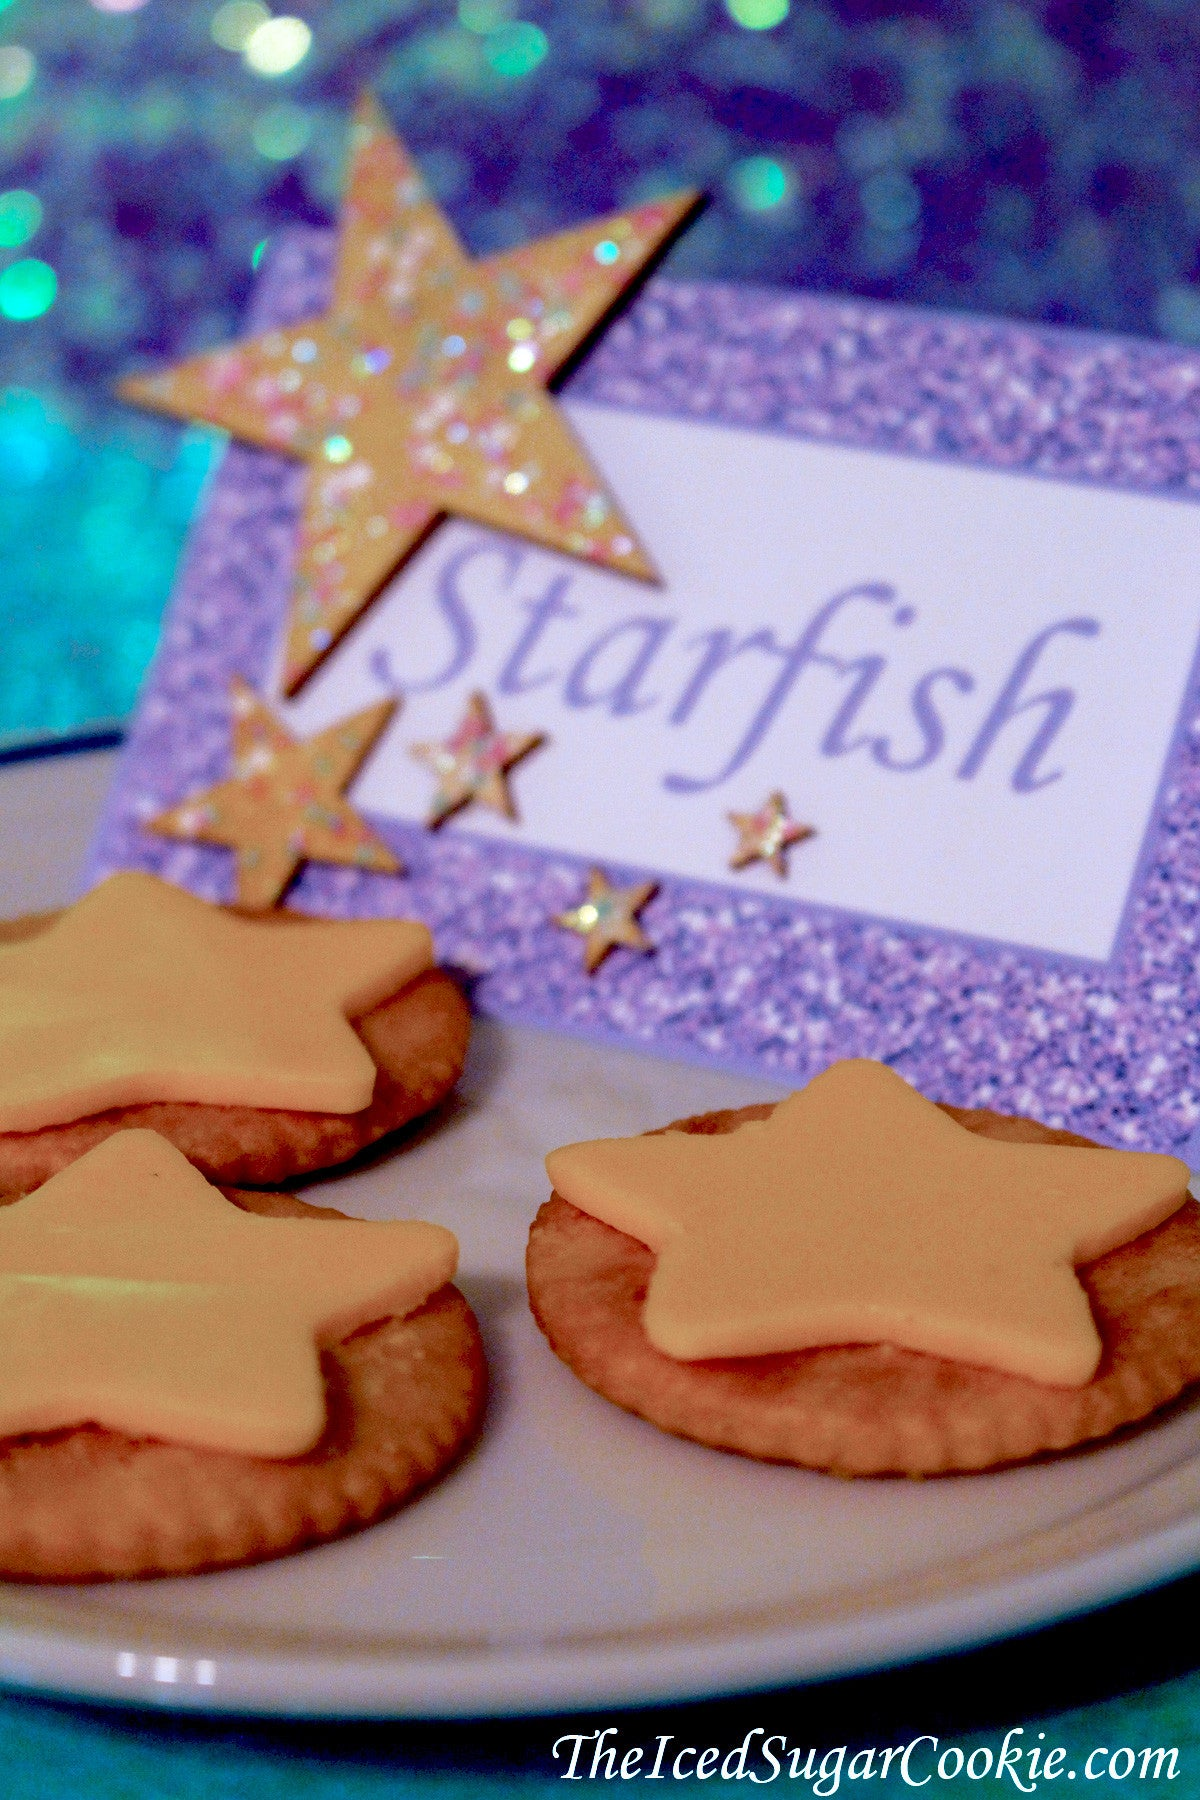 Mermaid Starfish Food Label Tent Cards With Wooden Stars With Glitter-Mermaid Birthday Party DIY Idea Crafts Under The Sea Starfish Food Label Tent Cards TheIcedSugarCookie.com